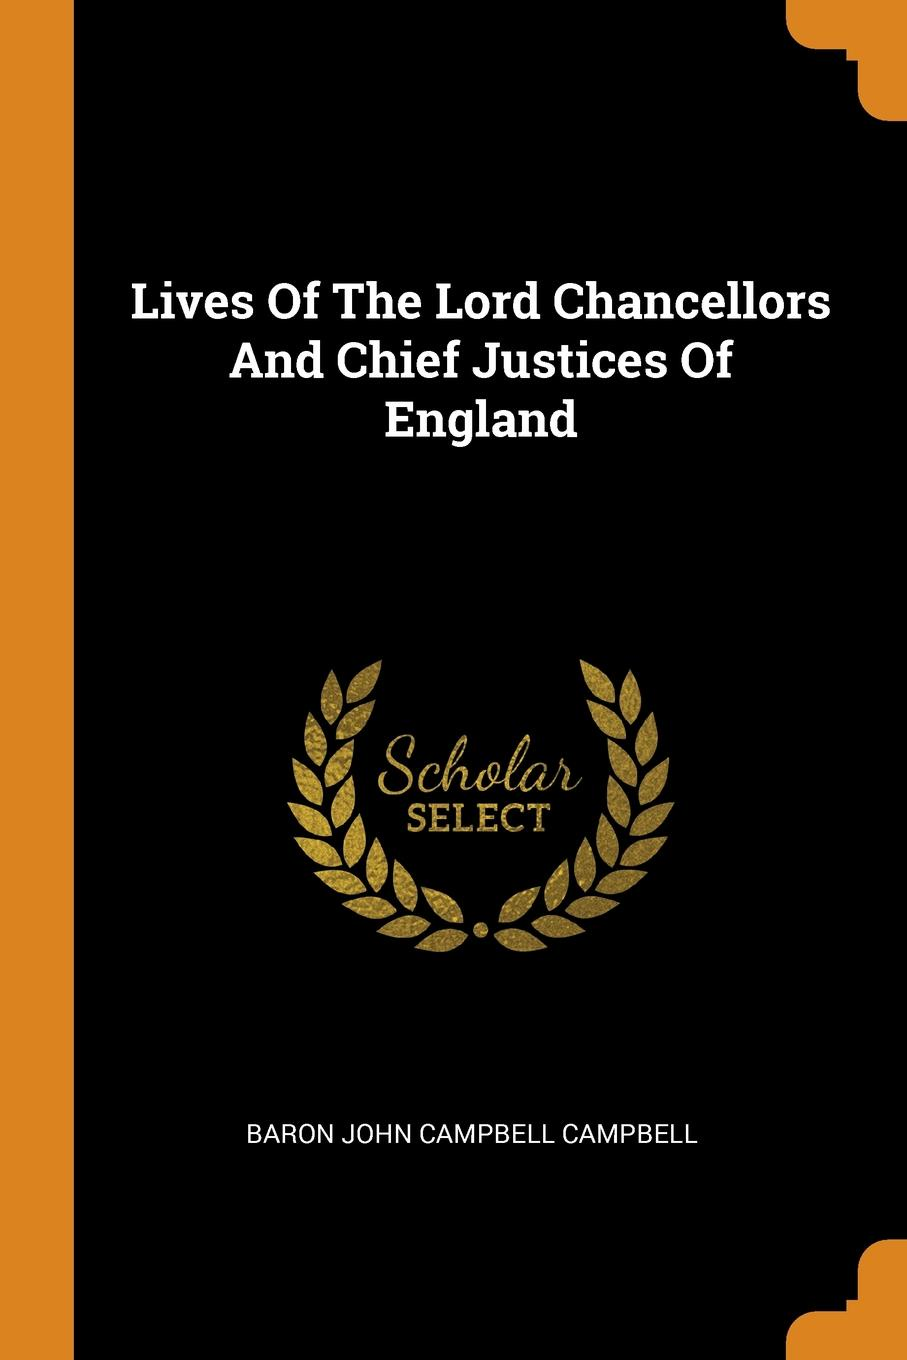 Lives Of The Lord Chancellors And Chief Justices Of England henry flanders the lives and times of the chief justices of the supreme court of the united states volume 2